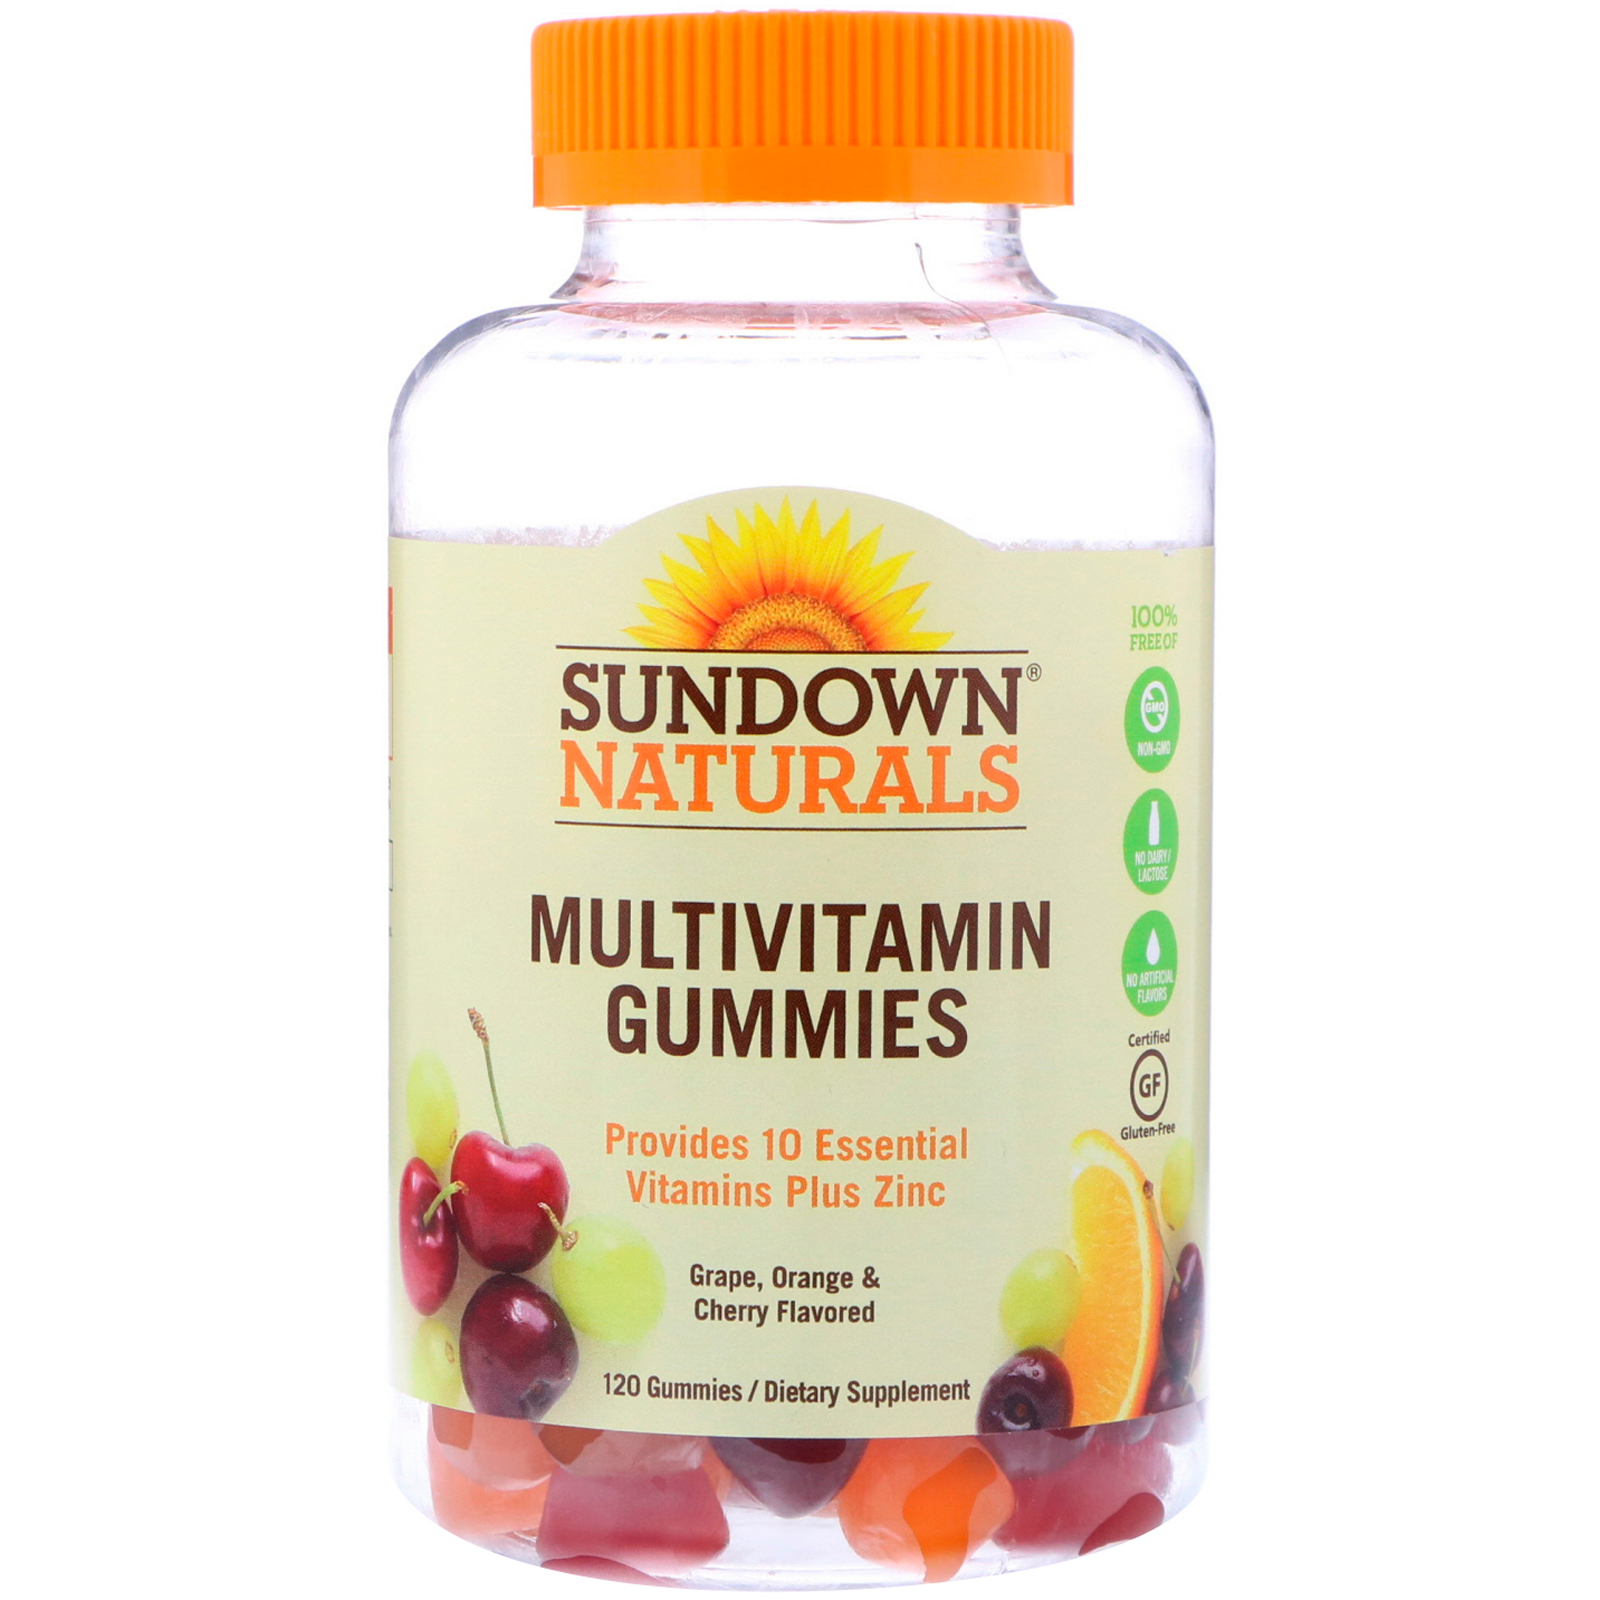 Sundown Naturals Multivitamin Gummies Reviews